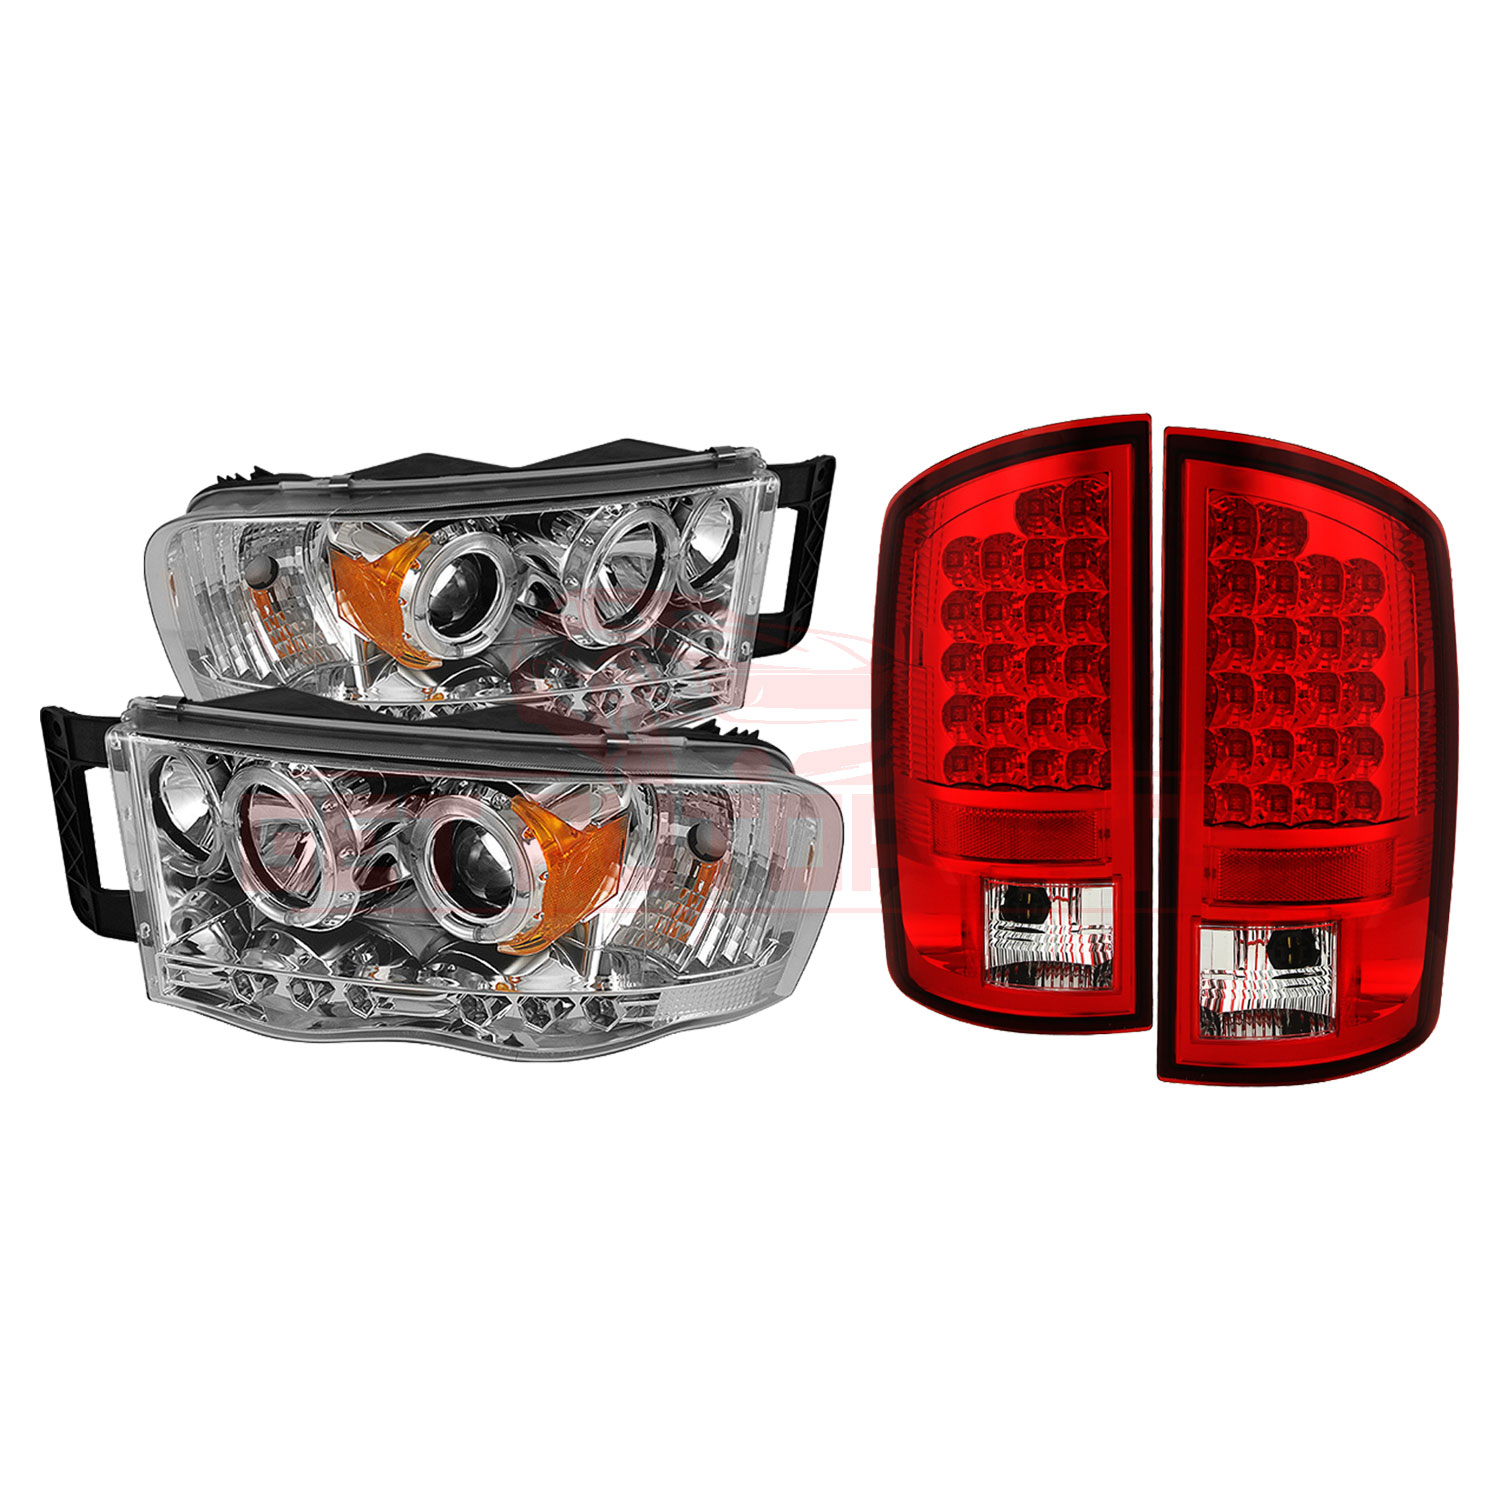 Spyder Halo LED Headlights & LED Tail Lights Red Clear - for Dodge Ram 02-05 part in Headlight & Tail Light Covers category